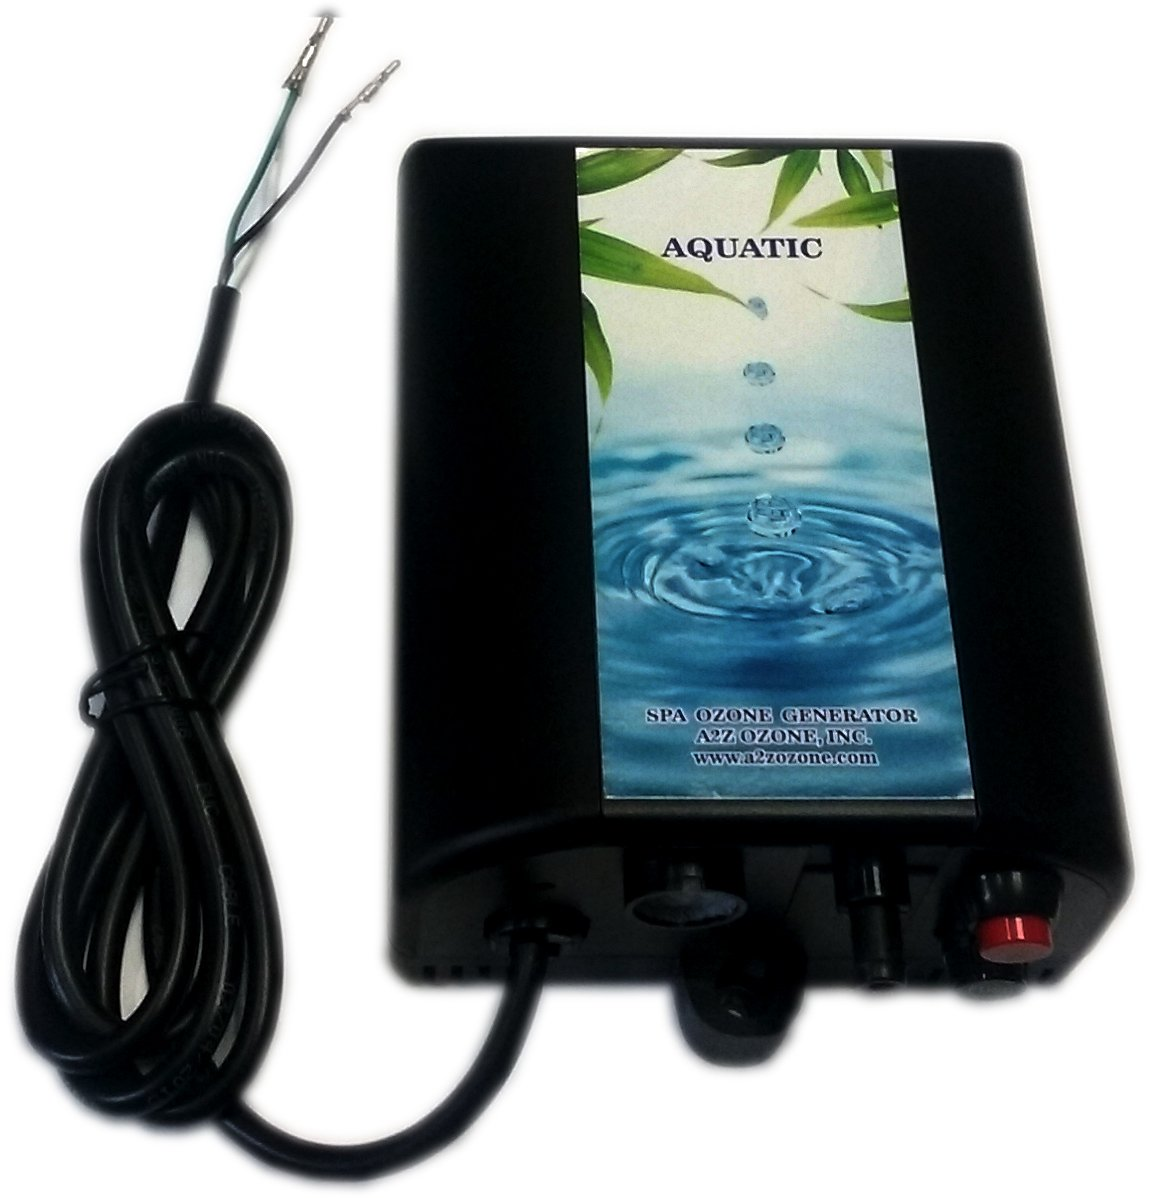 A2Z Ozone Aquatic Spa & Hot Tub Ozone Generator | Maintenance Free | Chemical Free | Up to 1,500 Gallons by A2Z Ozone